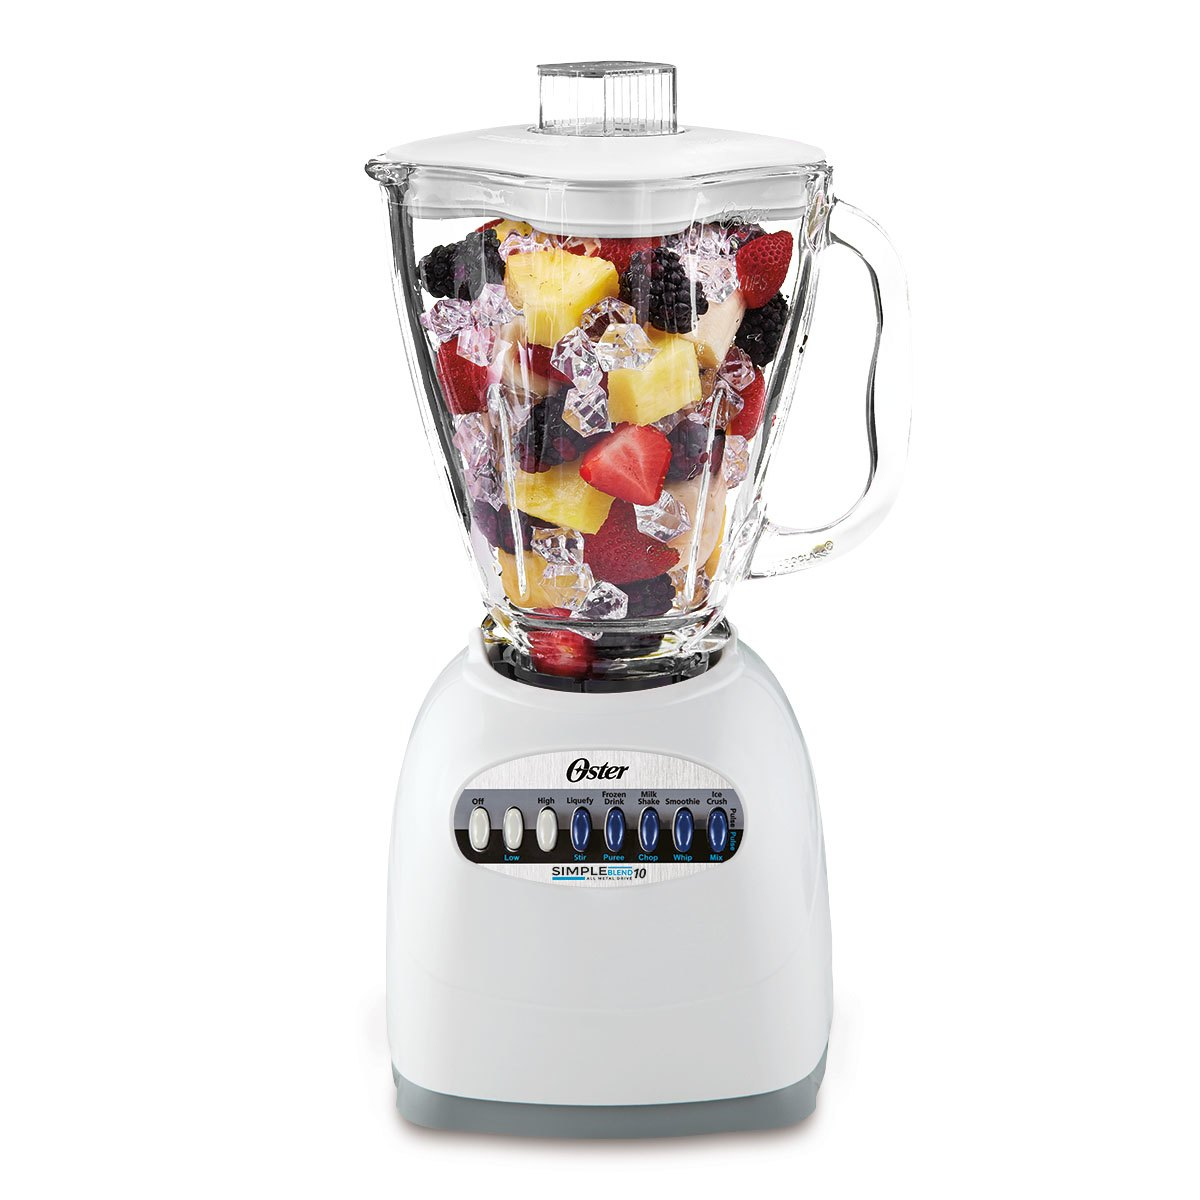 Oster Classic Series Simple Blender - White - Glass Jar - NEW UPDATED LOOK! 006647-000-N01